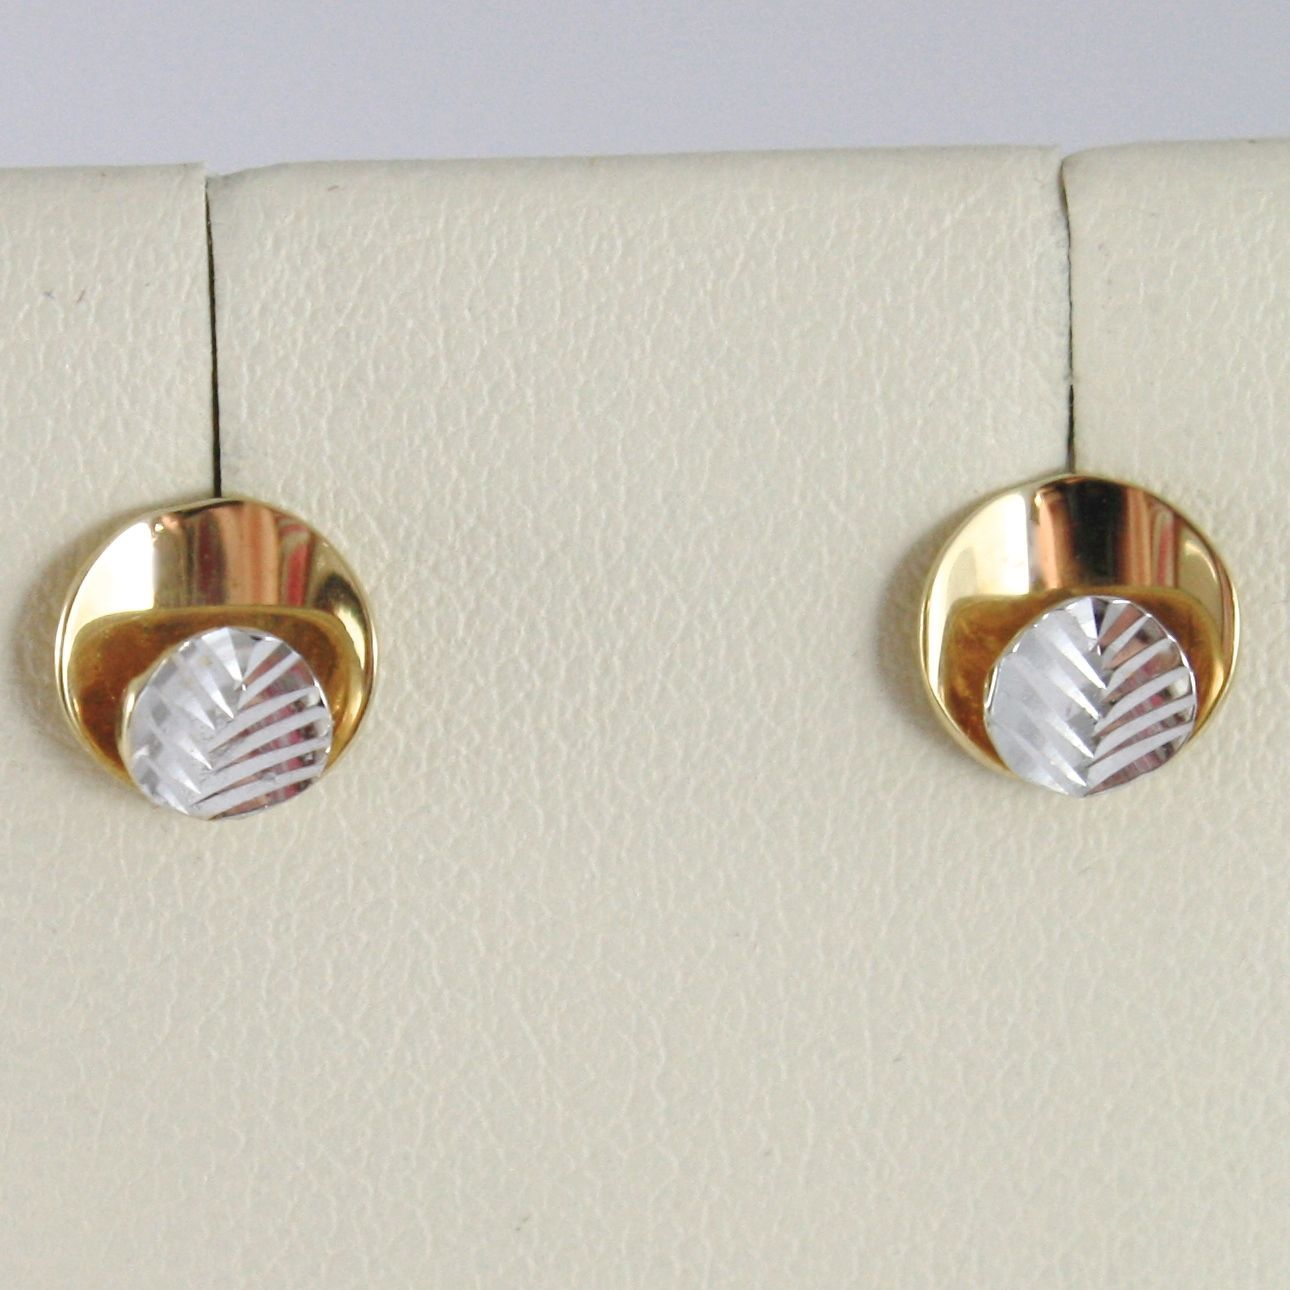 YELLOW GOLD EARRINGS WHITE 750 18K, DOUBLE CIRCLE, LEAF, DIAMETER 0.7 CM